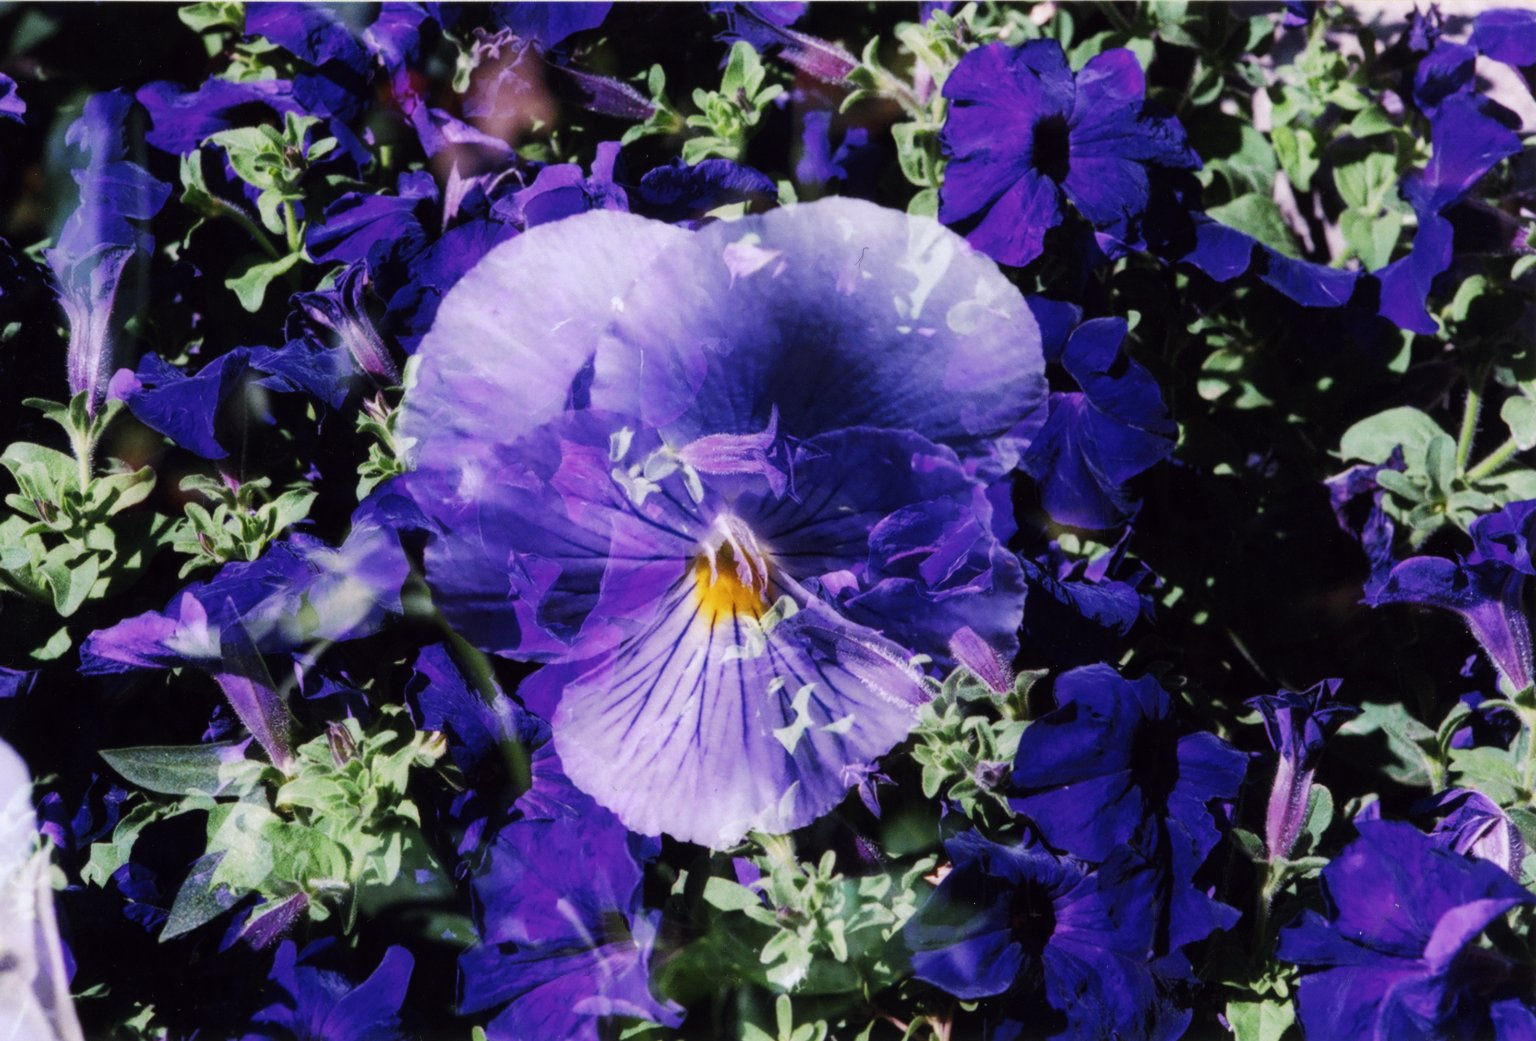 Double Exposure - Purple pansy over purple flowers